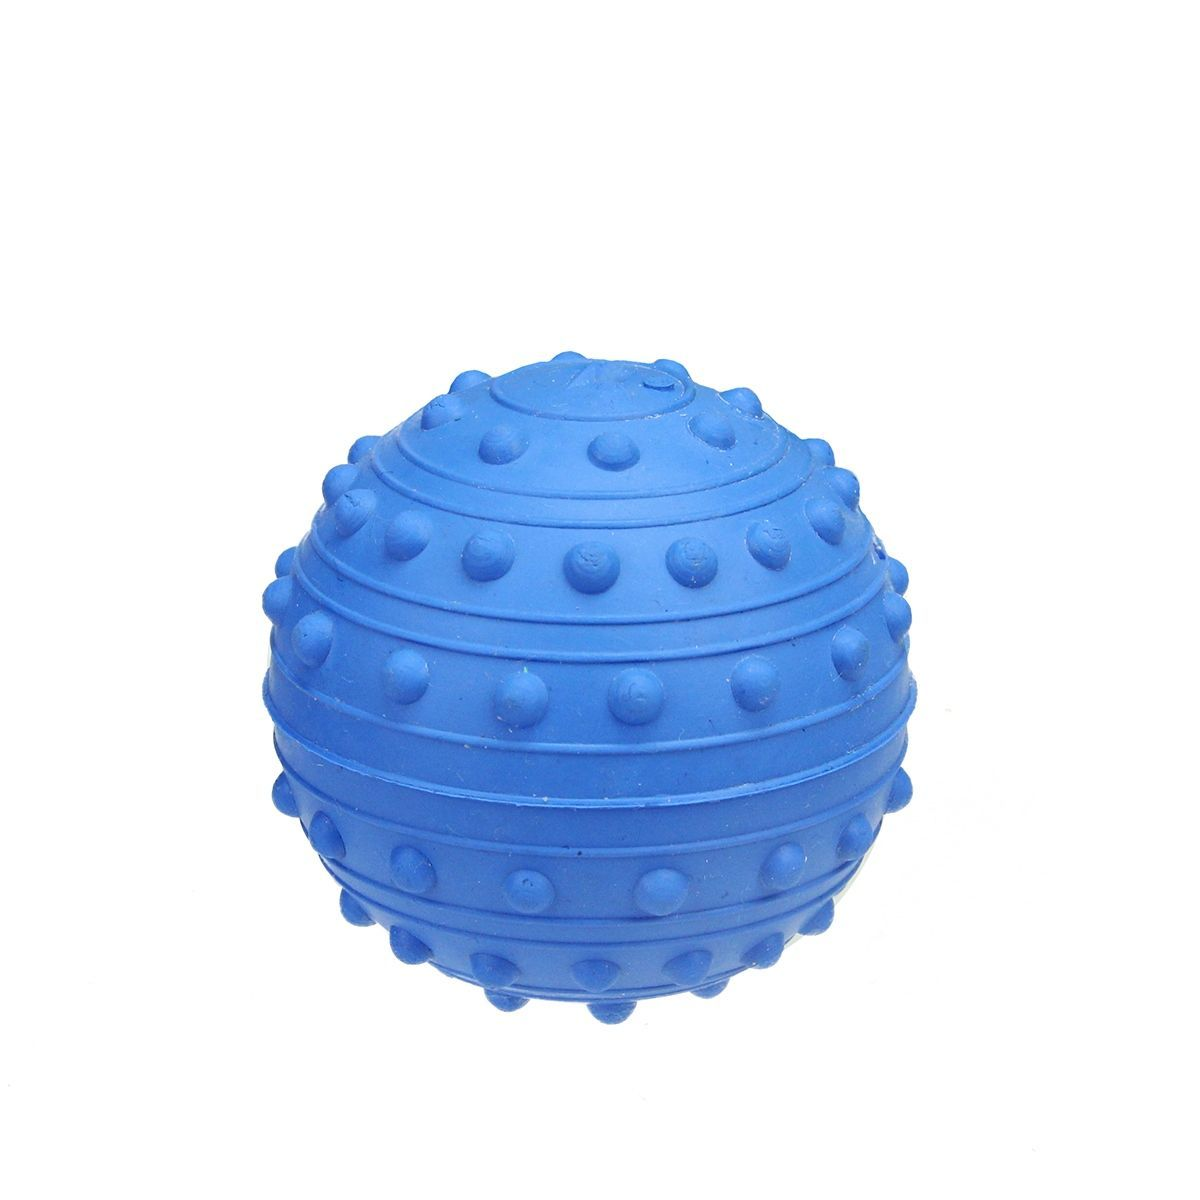 "2.5"" Cerulean Soft and Flexible TPR Rubber Ball Puppy Dog Fetch Toy with Squeaker"